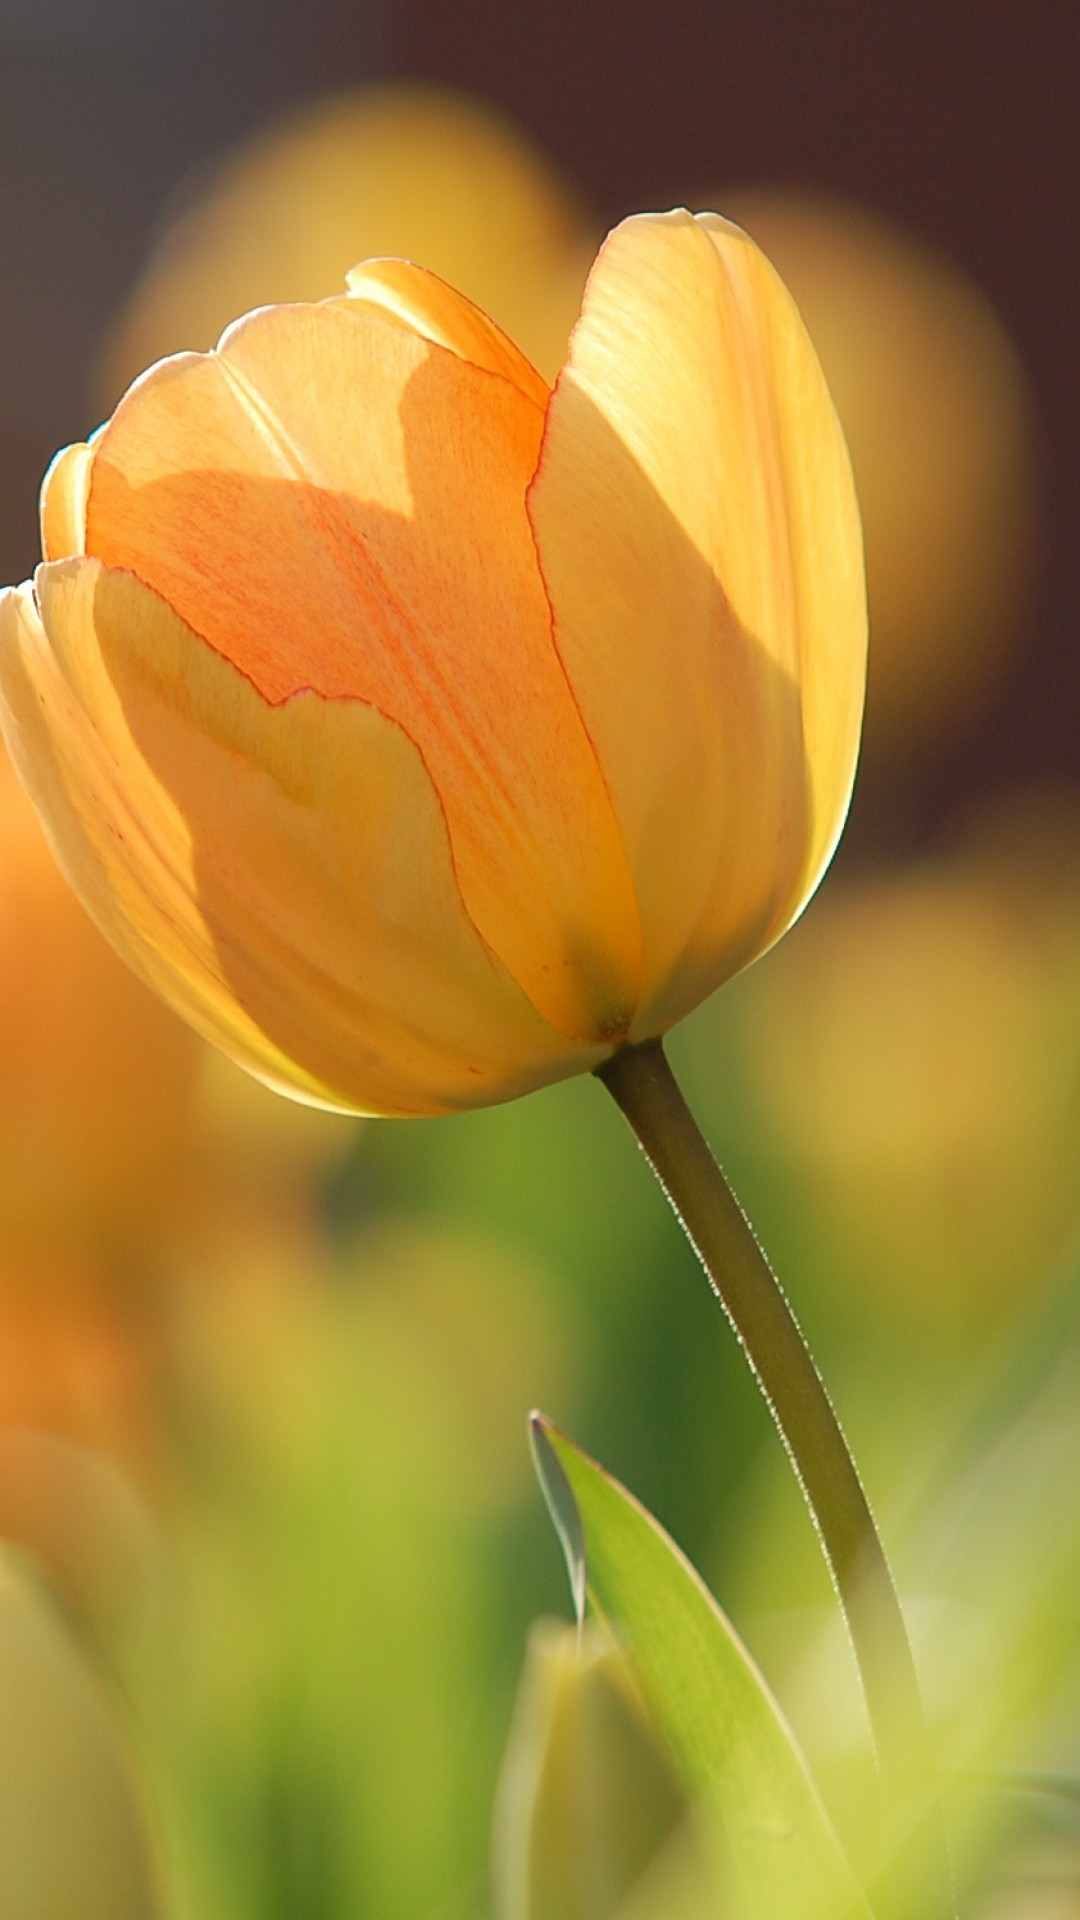 Wallpapers Philosophy Quotes Stock Images Flowers Tulips Yellow Spring Hd Stock